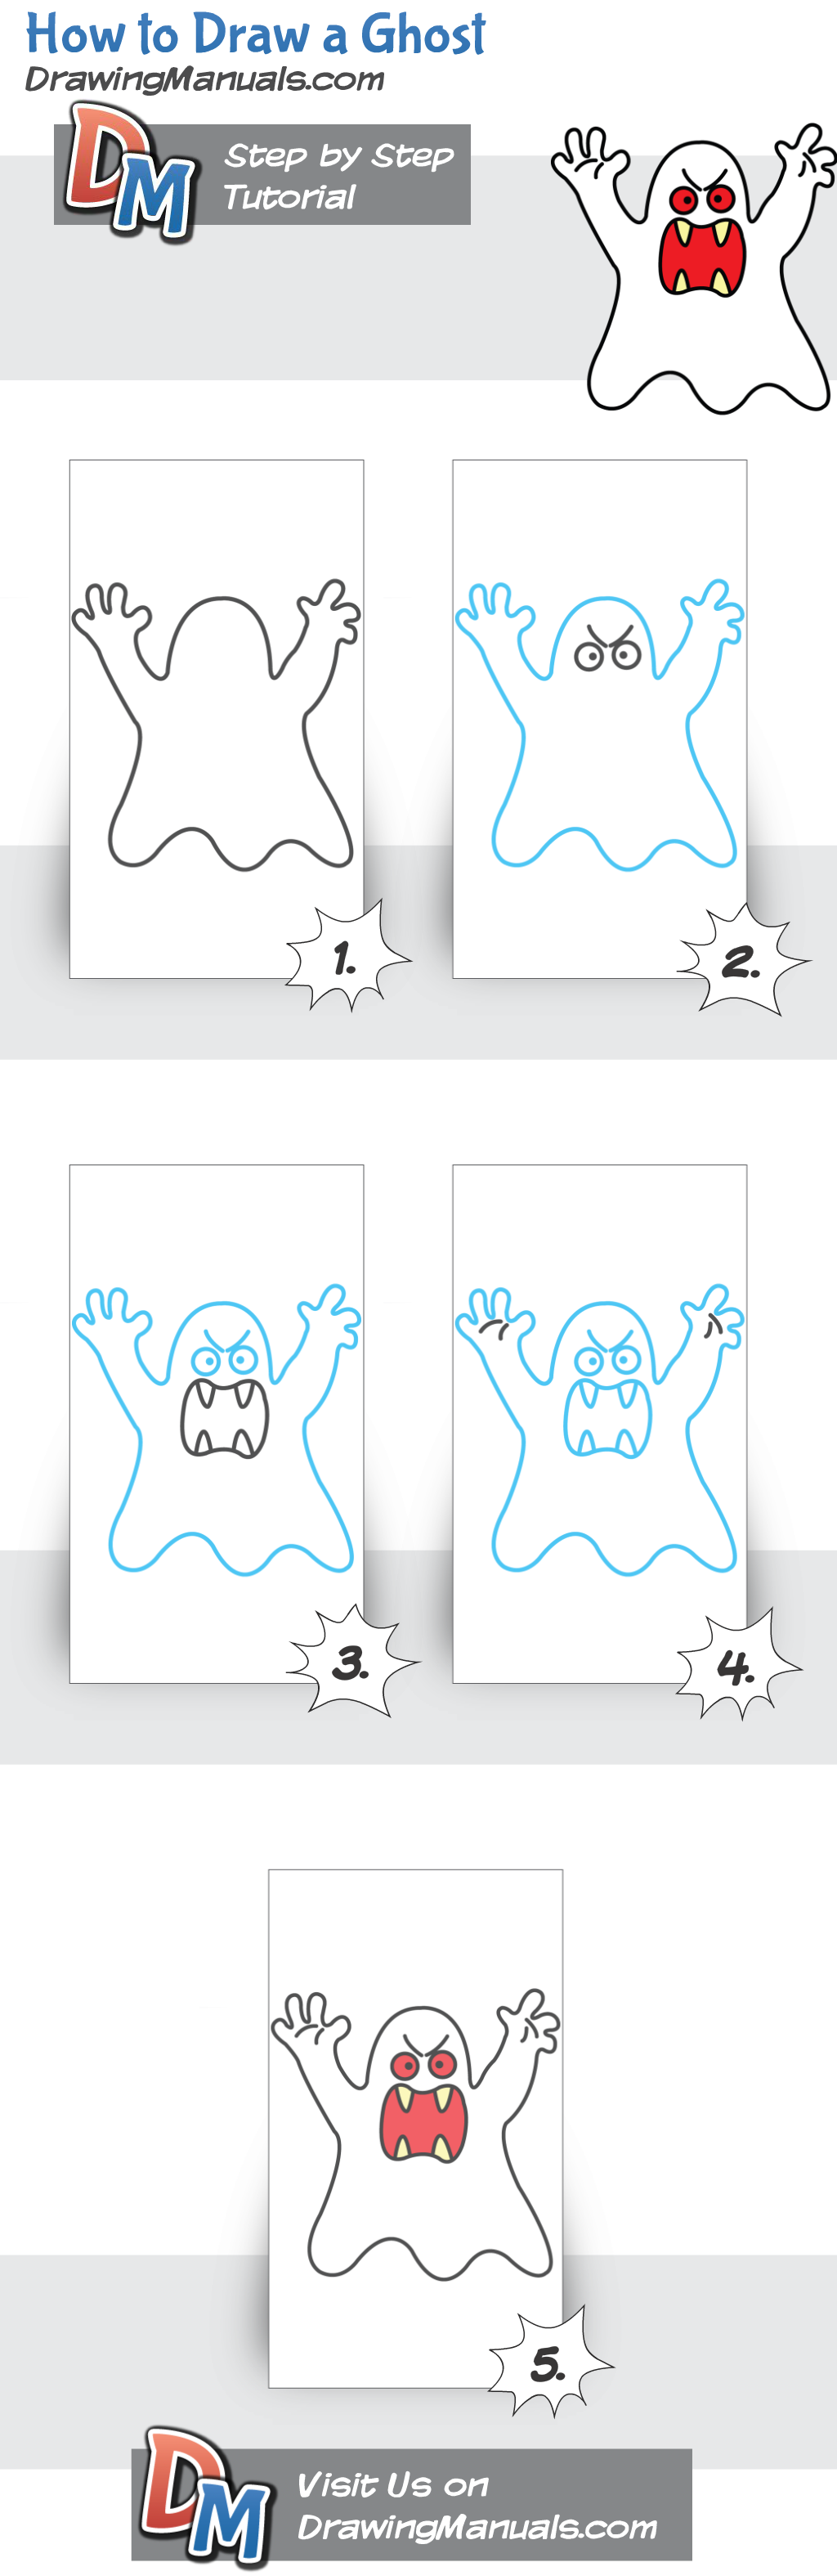 How to Draw a Ghost, drawing tutorial for artists and beginners http://drawingmanuals.com/manual/how-to-draw-a-ghost/